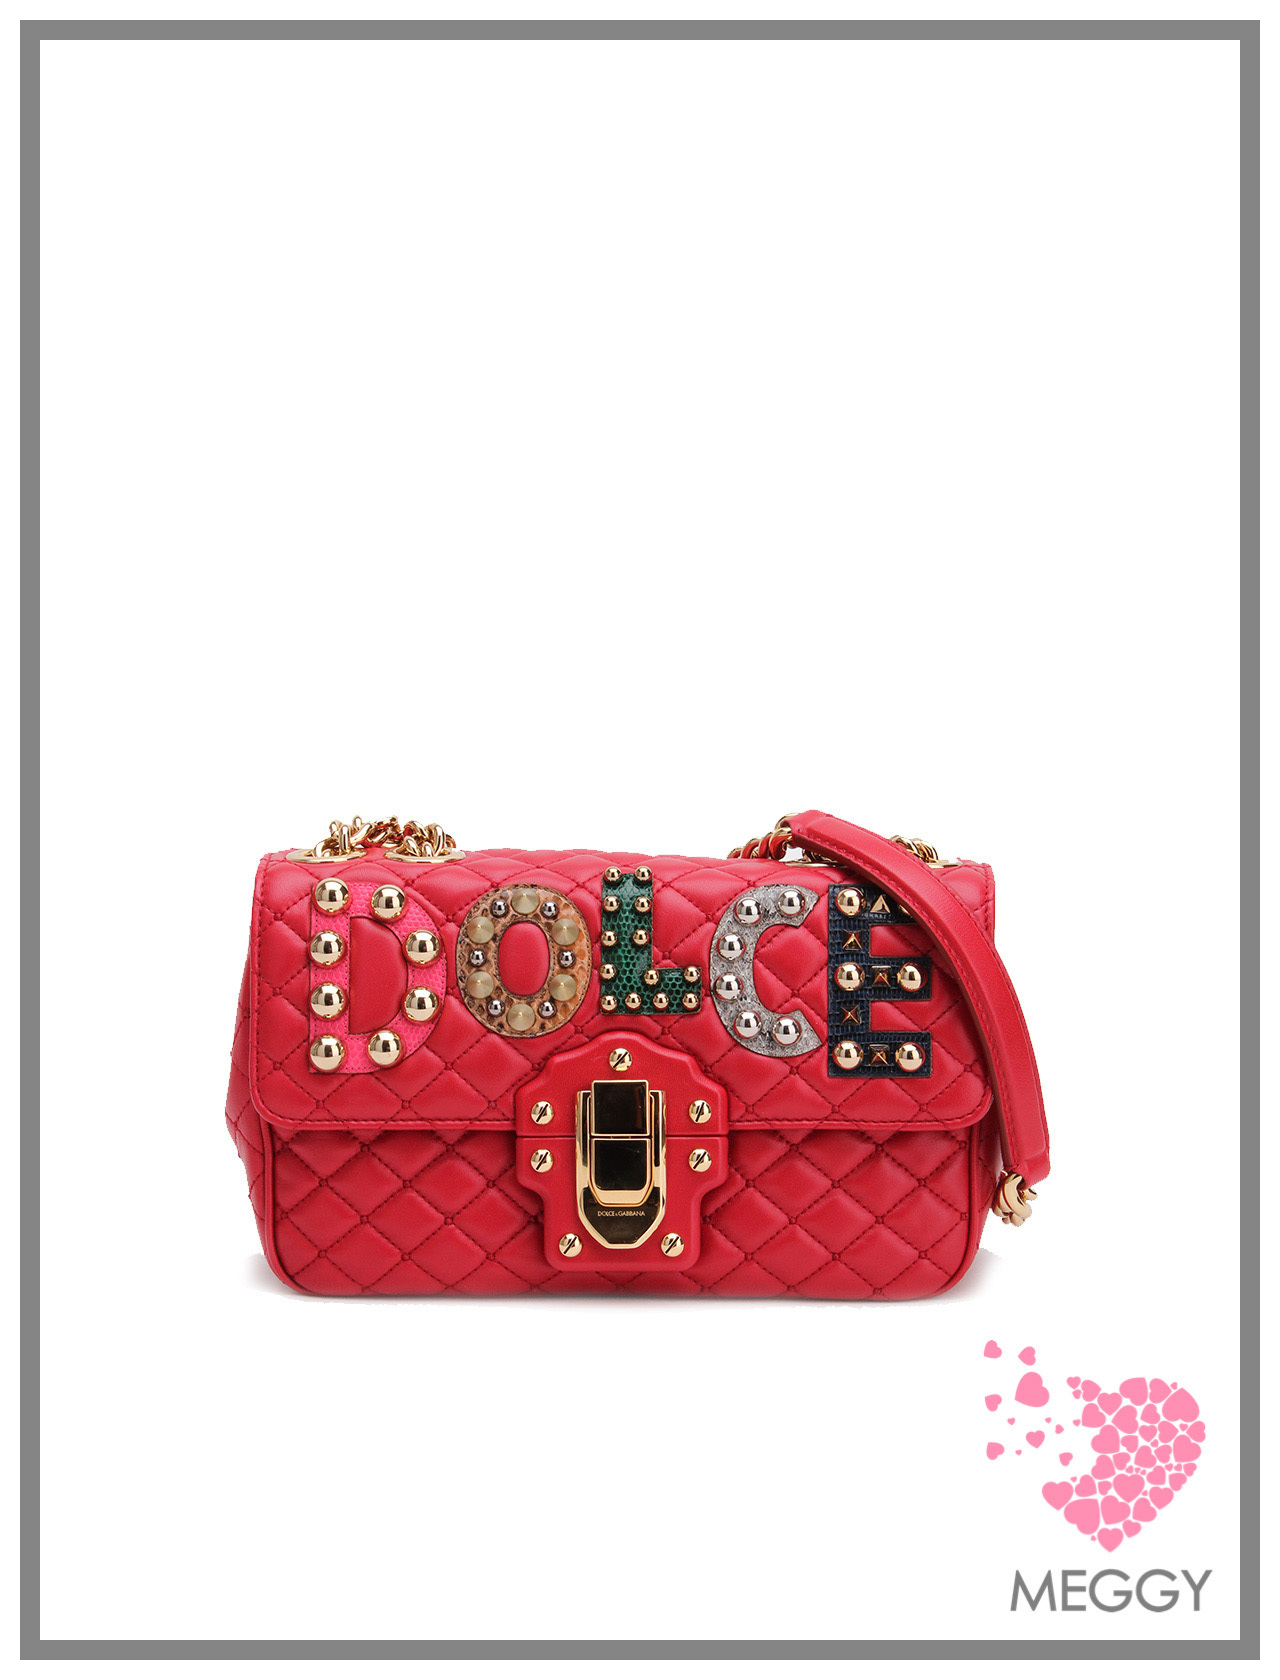 RED APPLIQUE' LUCIA ショルダーバッグ